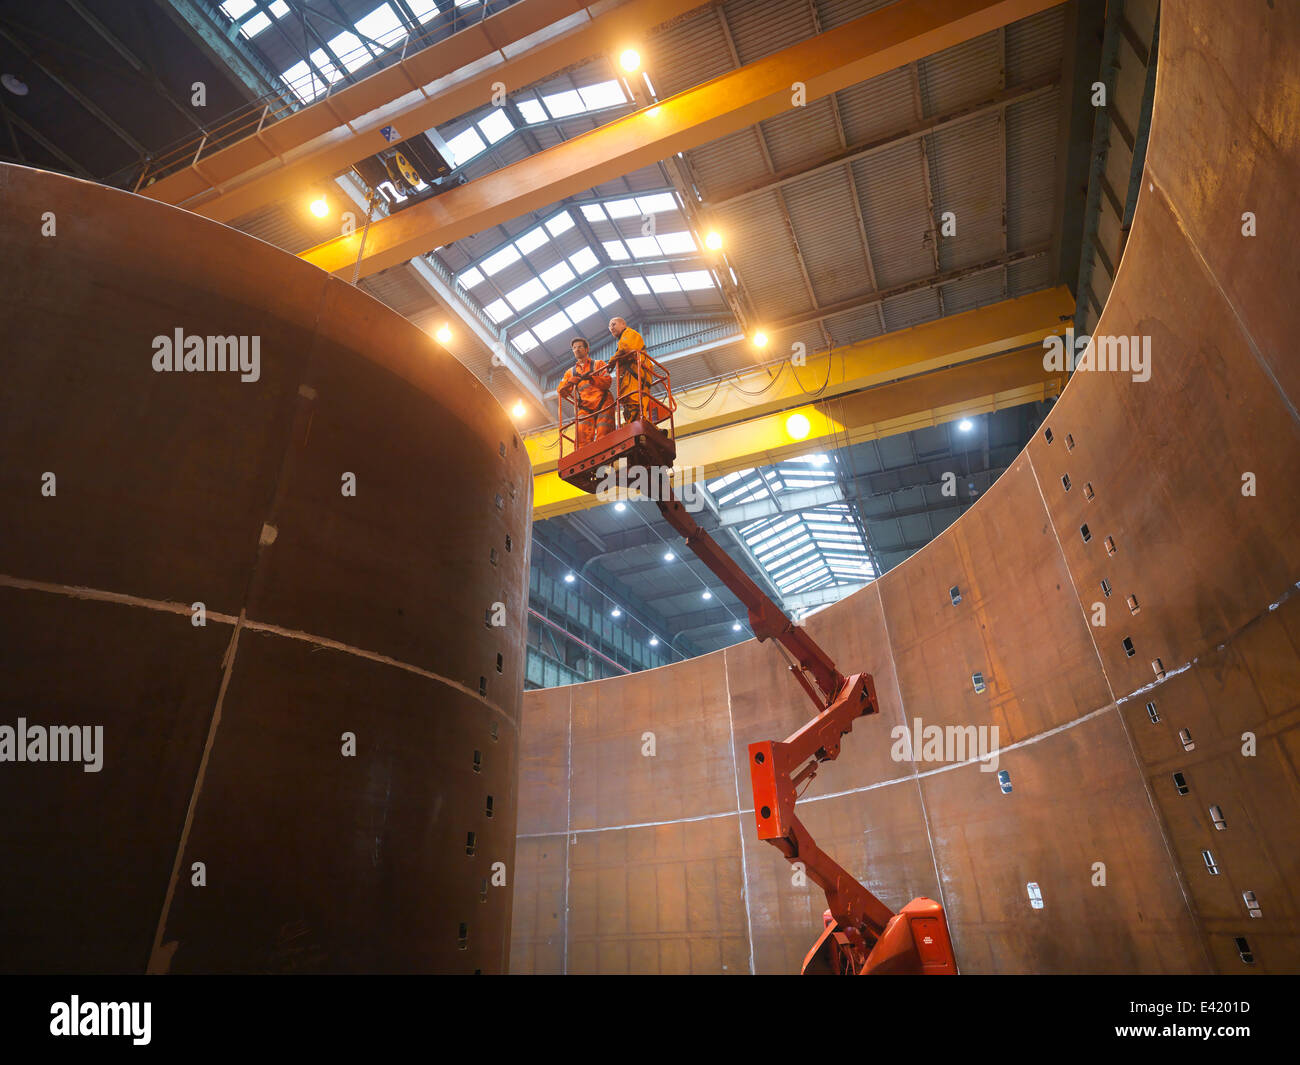 Engineers on high lift inspecting marine fabrication used for cable laying - Stock Image